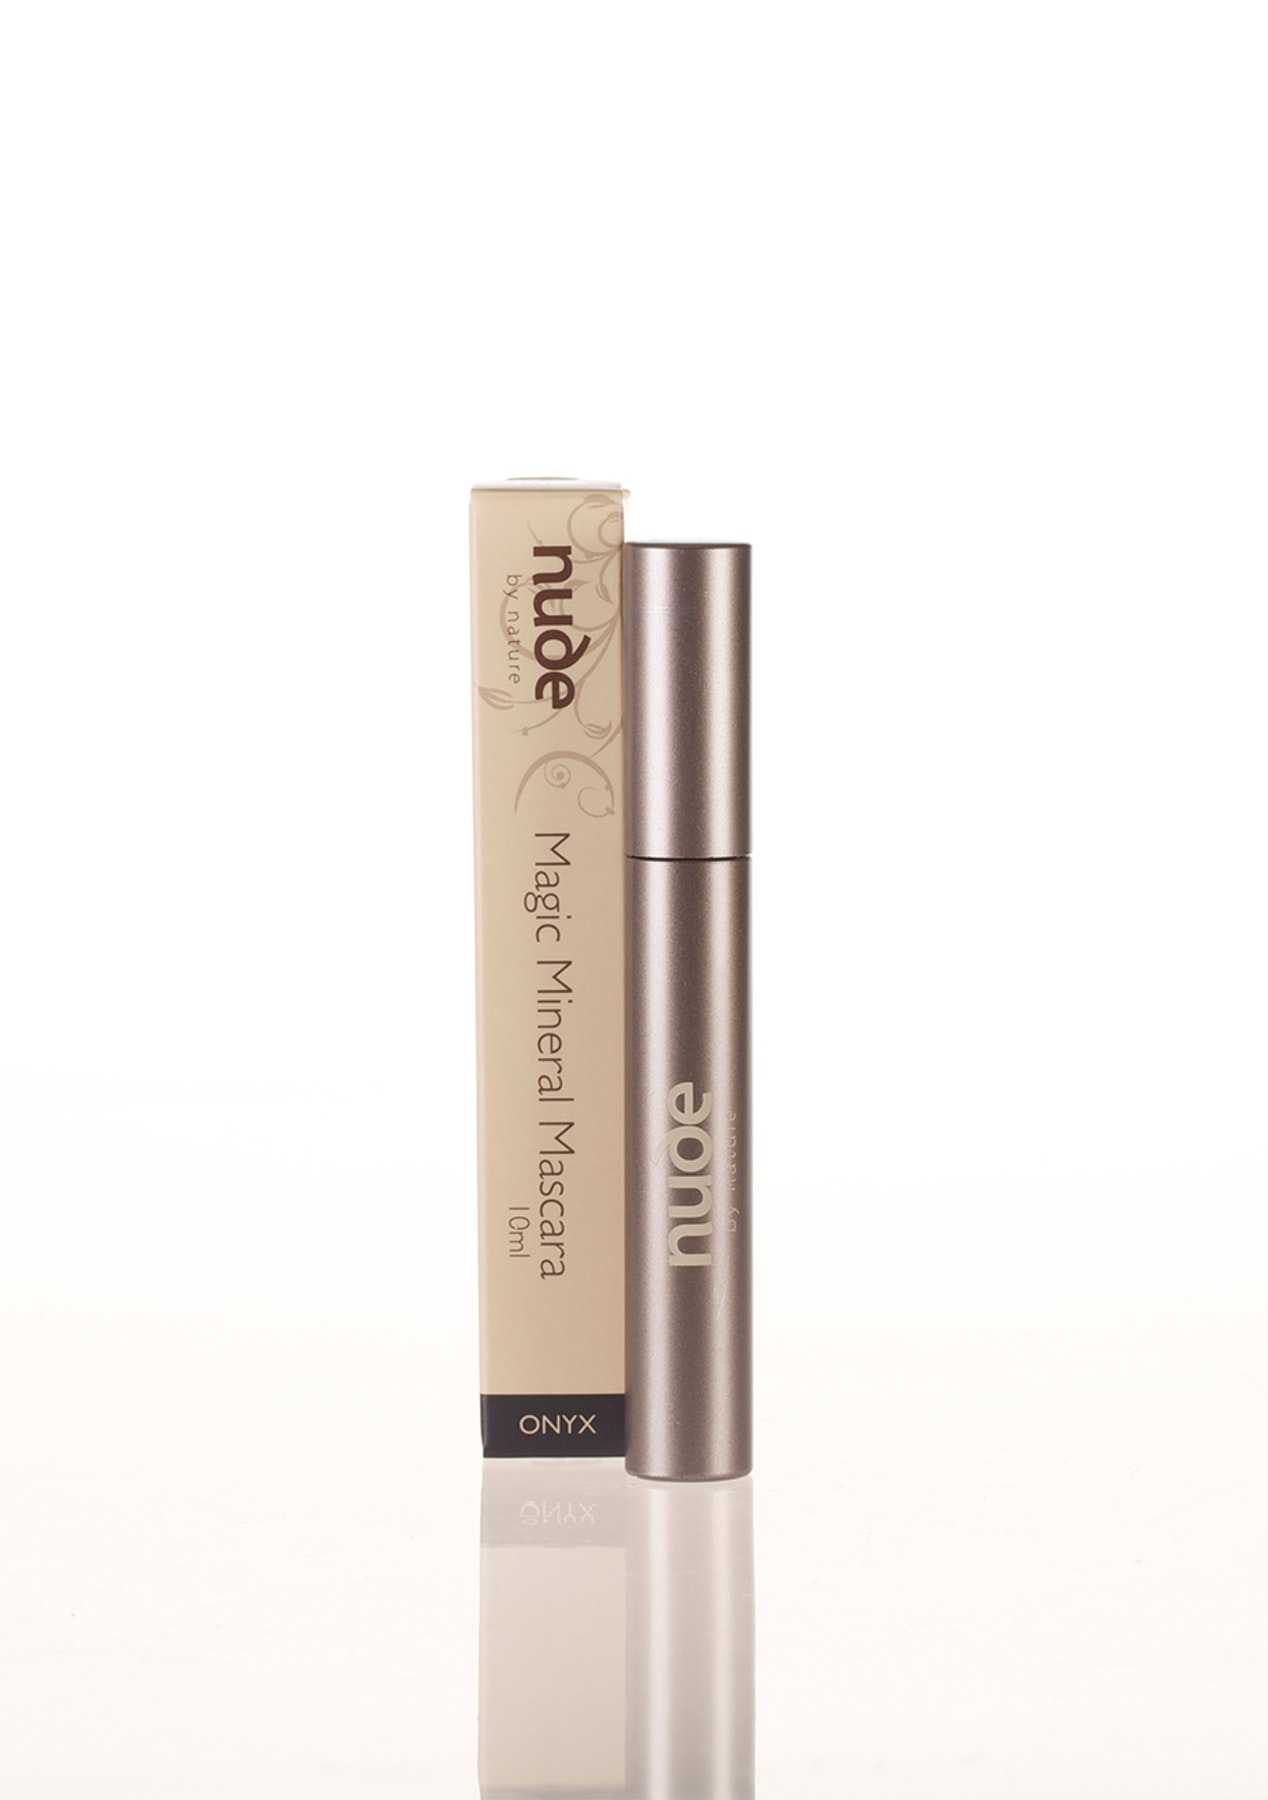 Nude by Nature - Nude Magic Mineral Mascara Onyx - Tailor, Trilogy ...